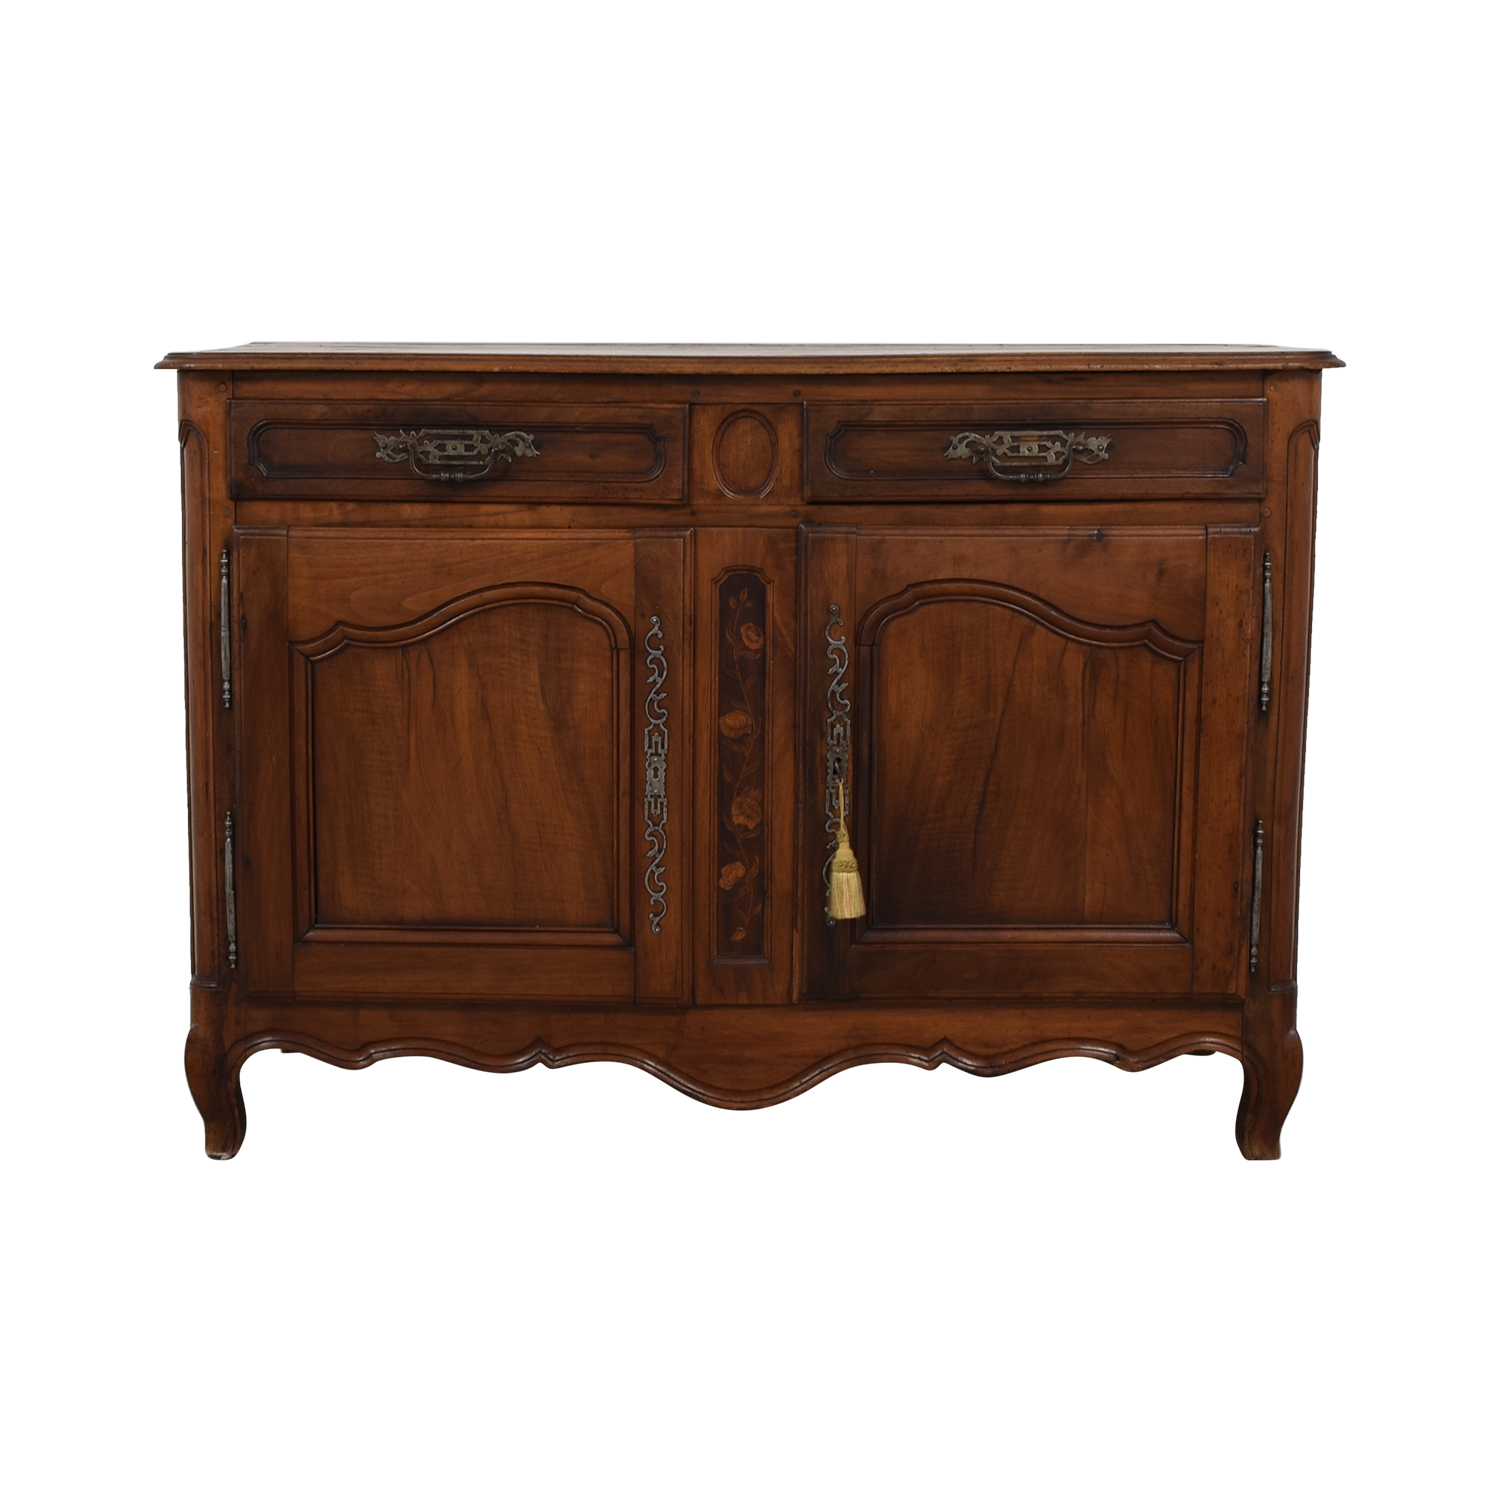 Antique French Country Walnut Dovetailed Buffet sale